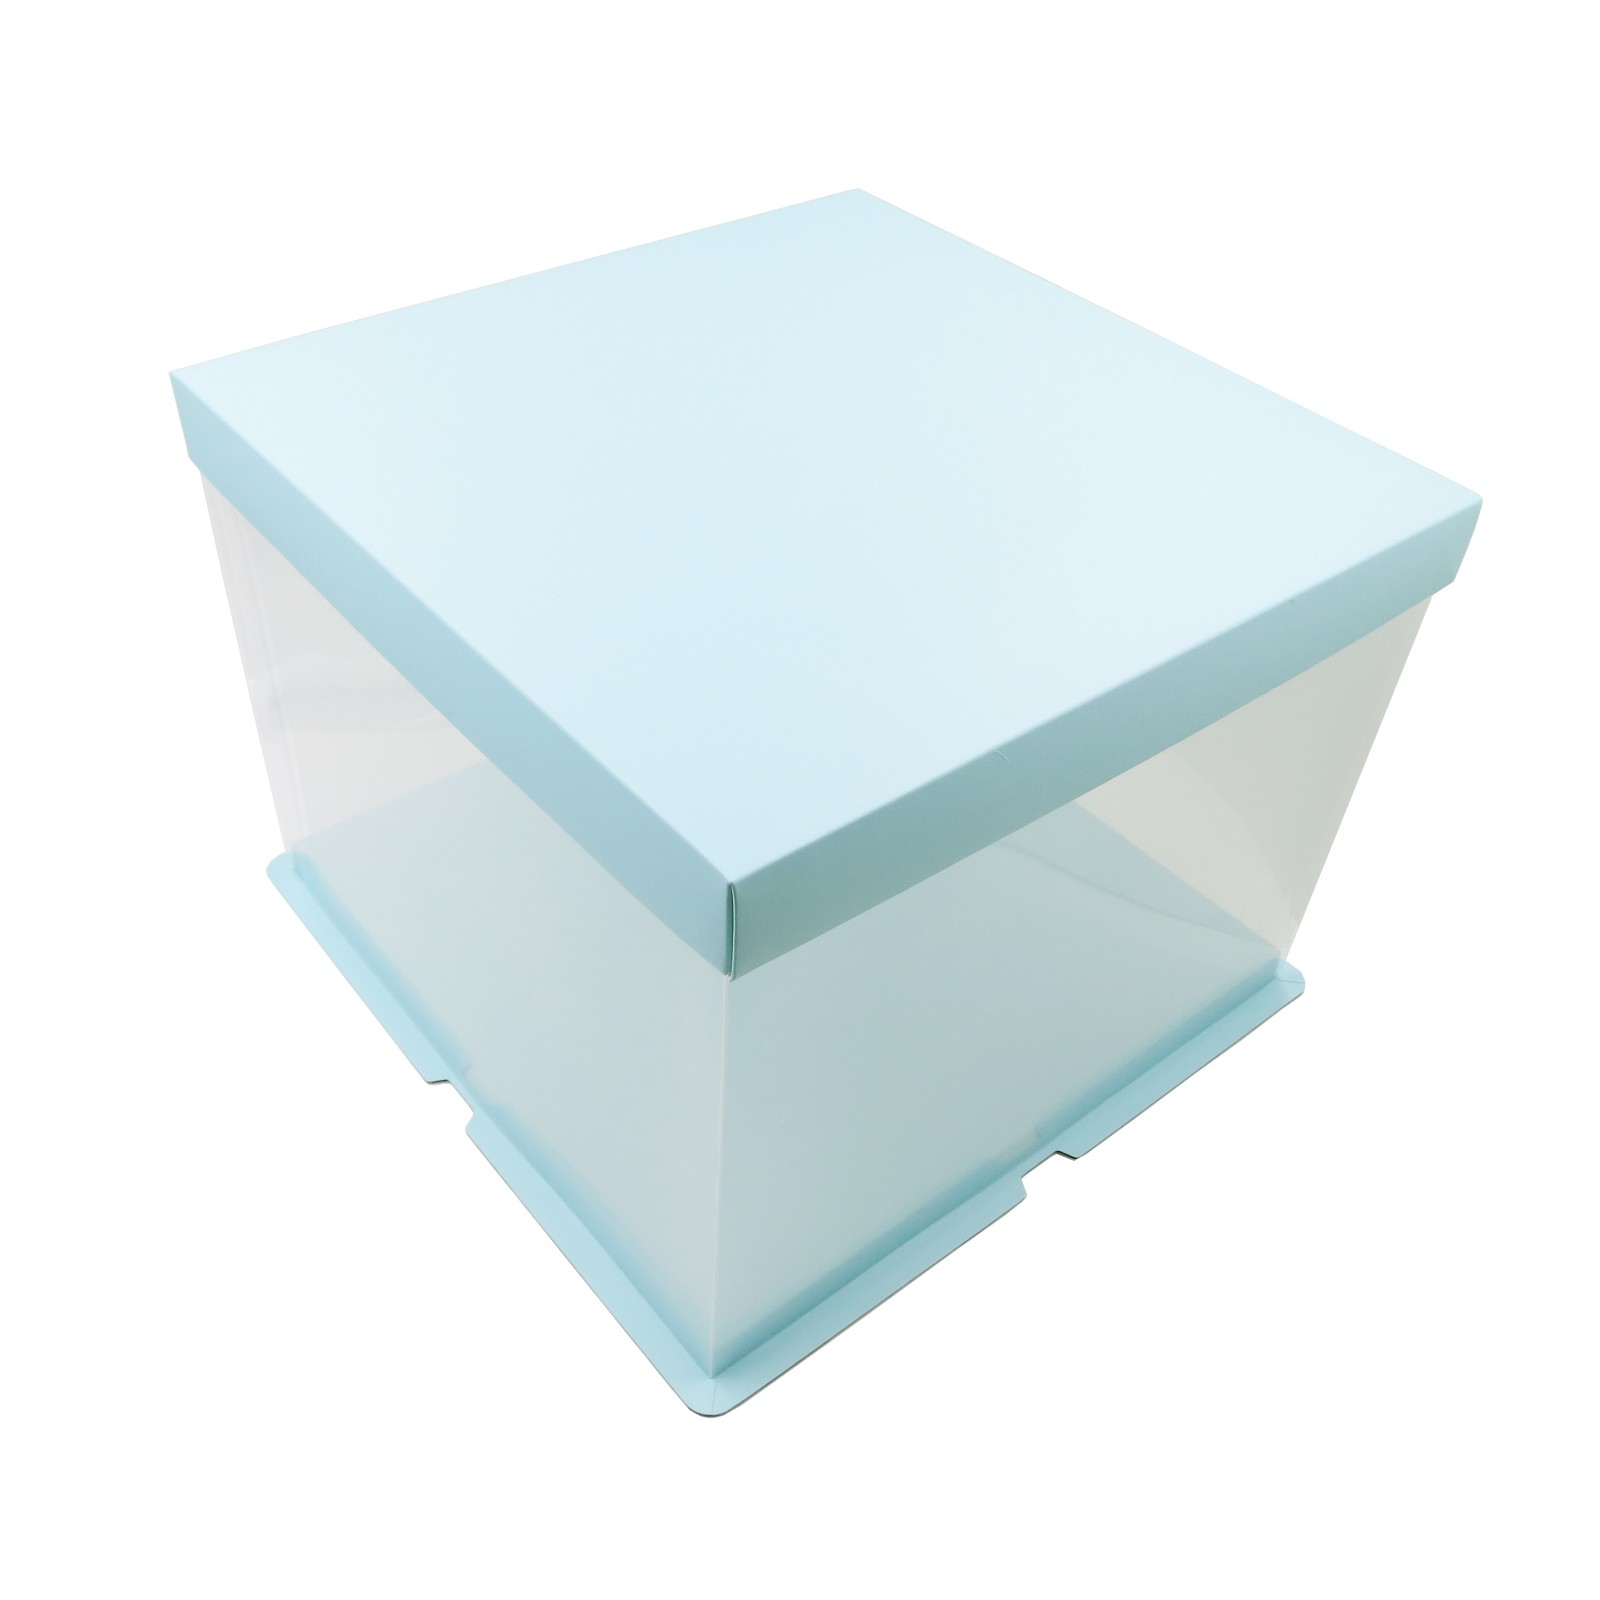 Yijianxing Plastic Products useful candle box packaging with Quiet Stable Motor for product packaging-6